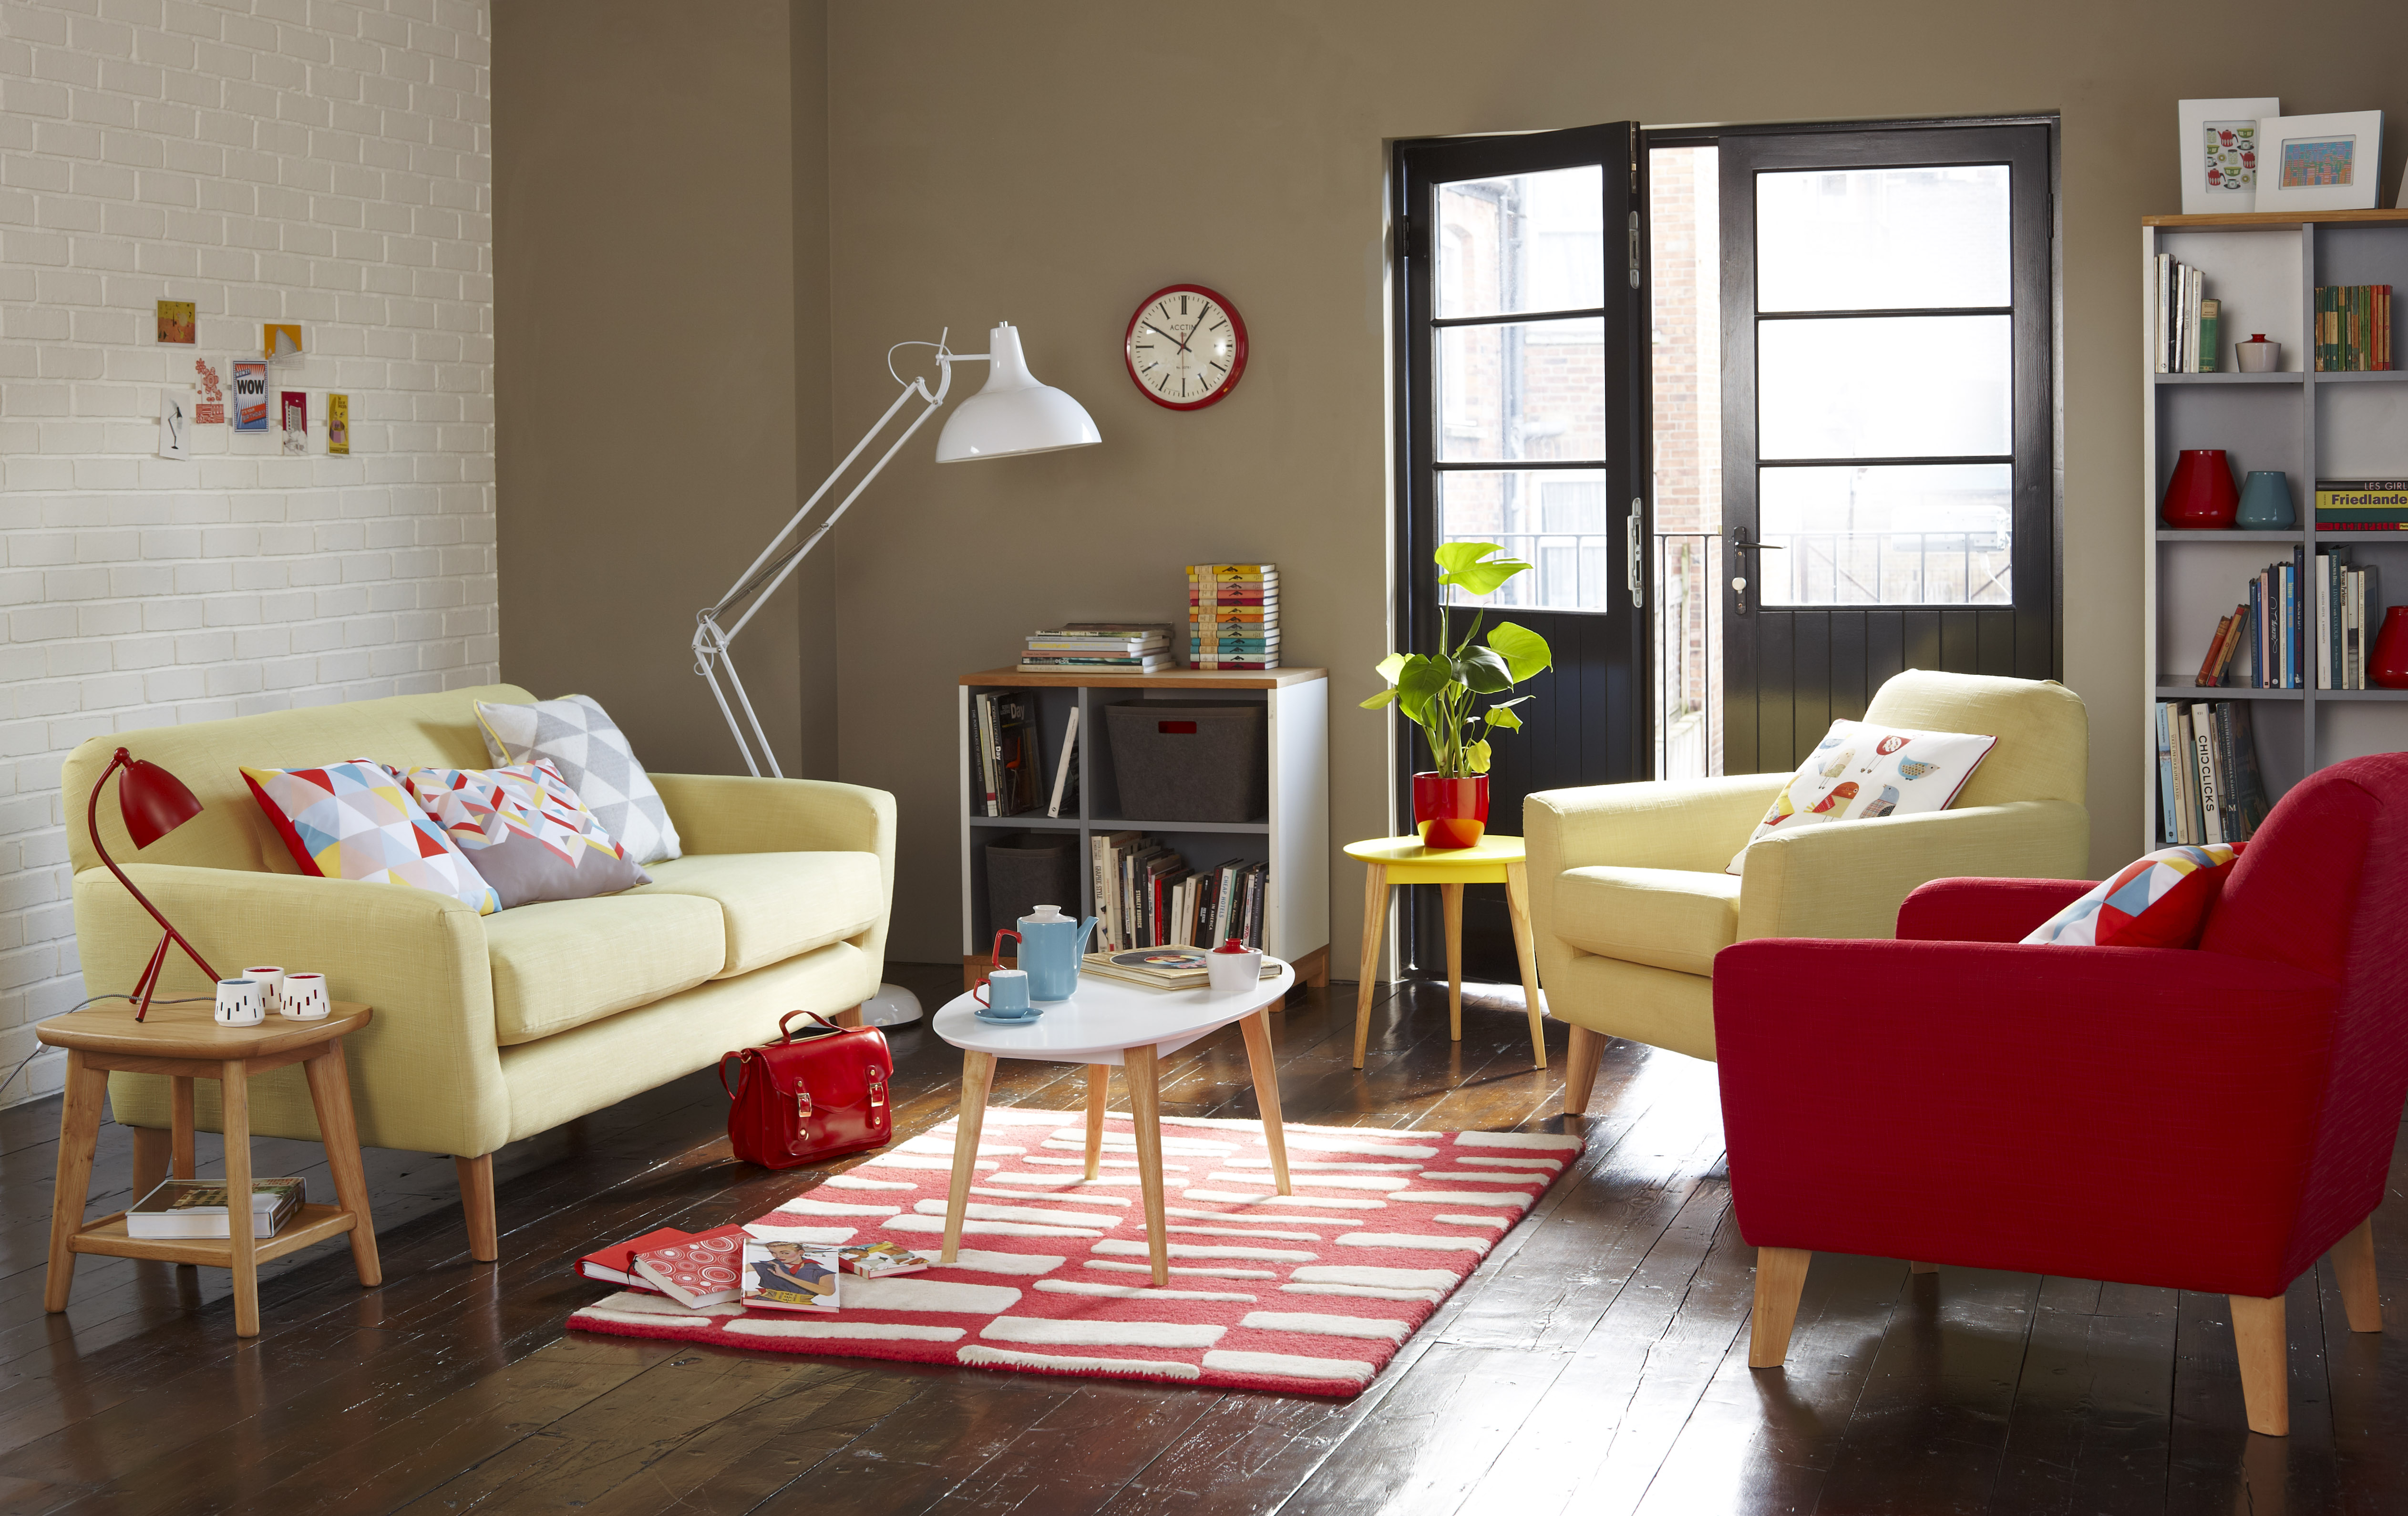 Tesco Living Room Furniture Retro Furniture The Treasure Hunter Well Designed Quirky And